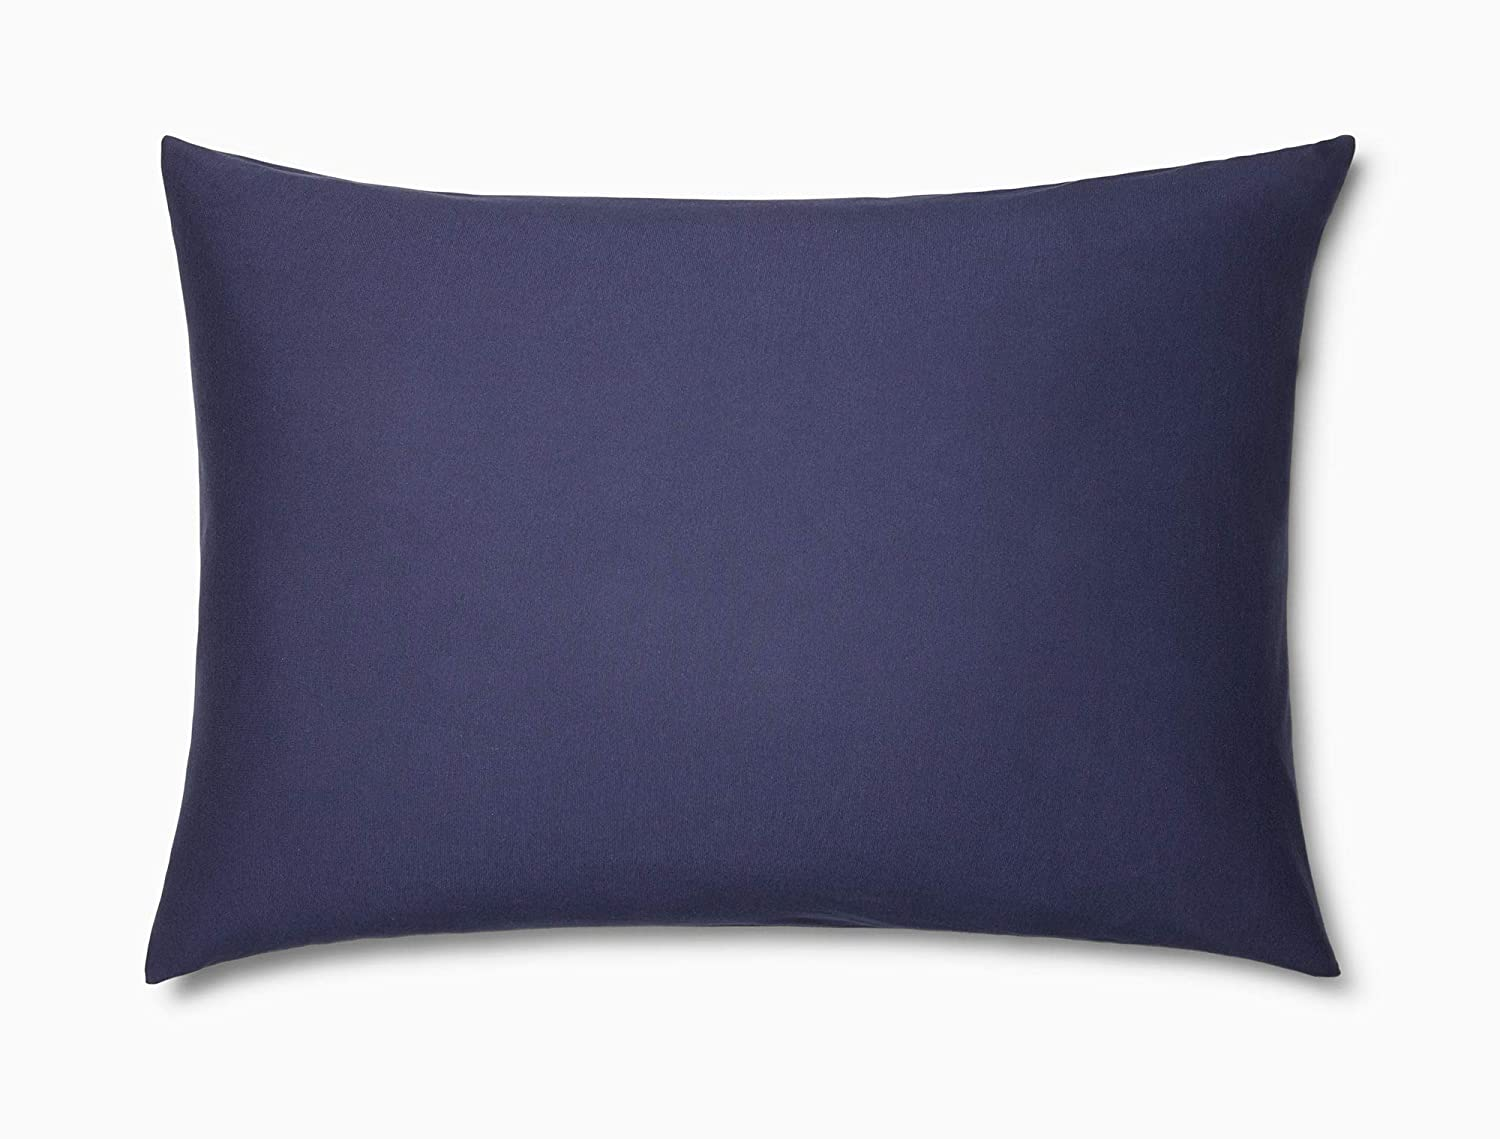 Calvin Klein Modern Cotton Harrison Pillowcase Pair, Standard, Navy